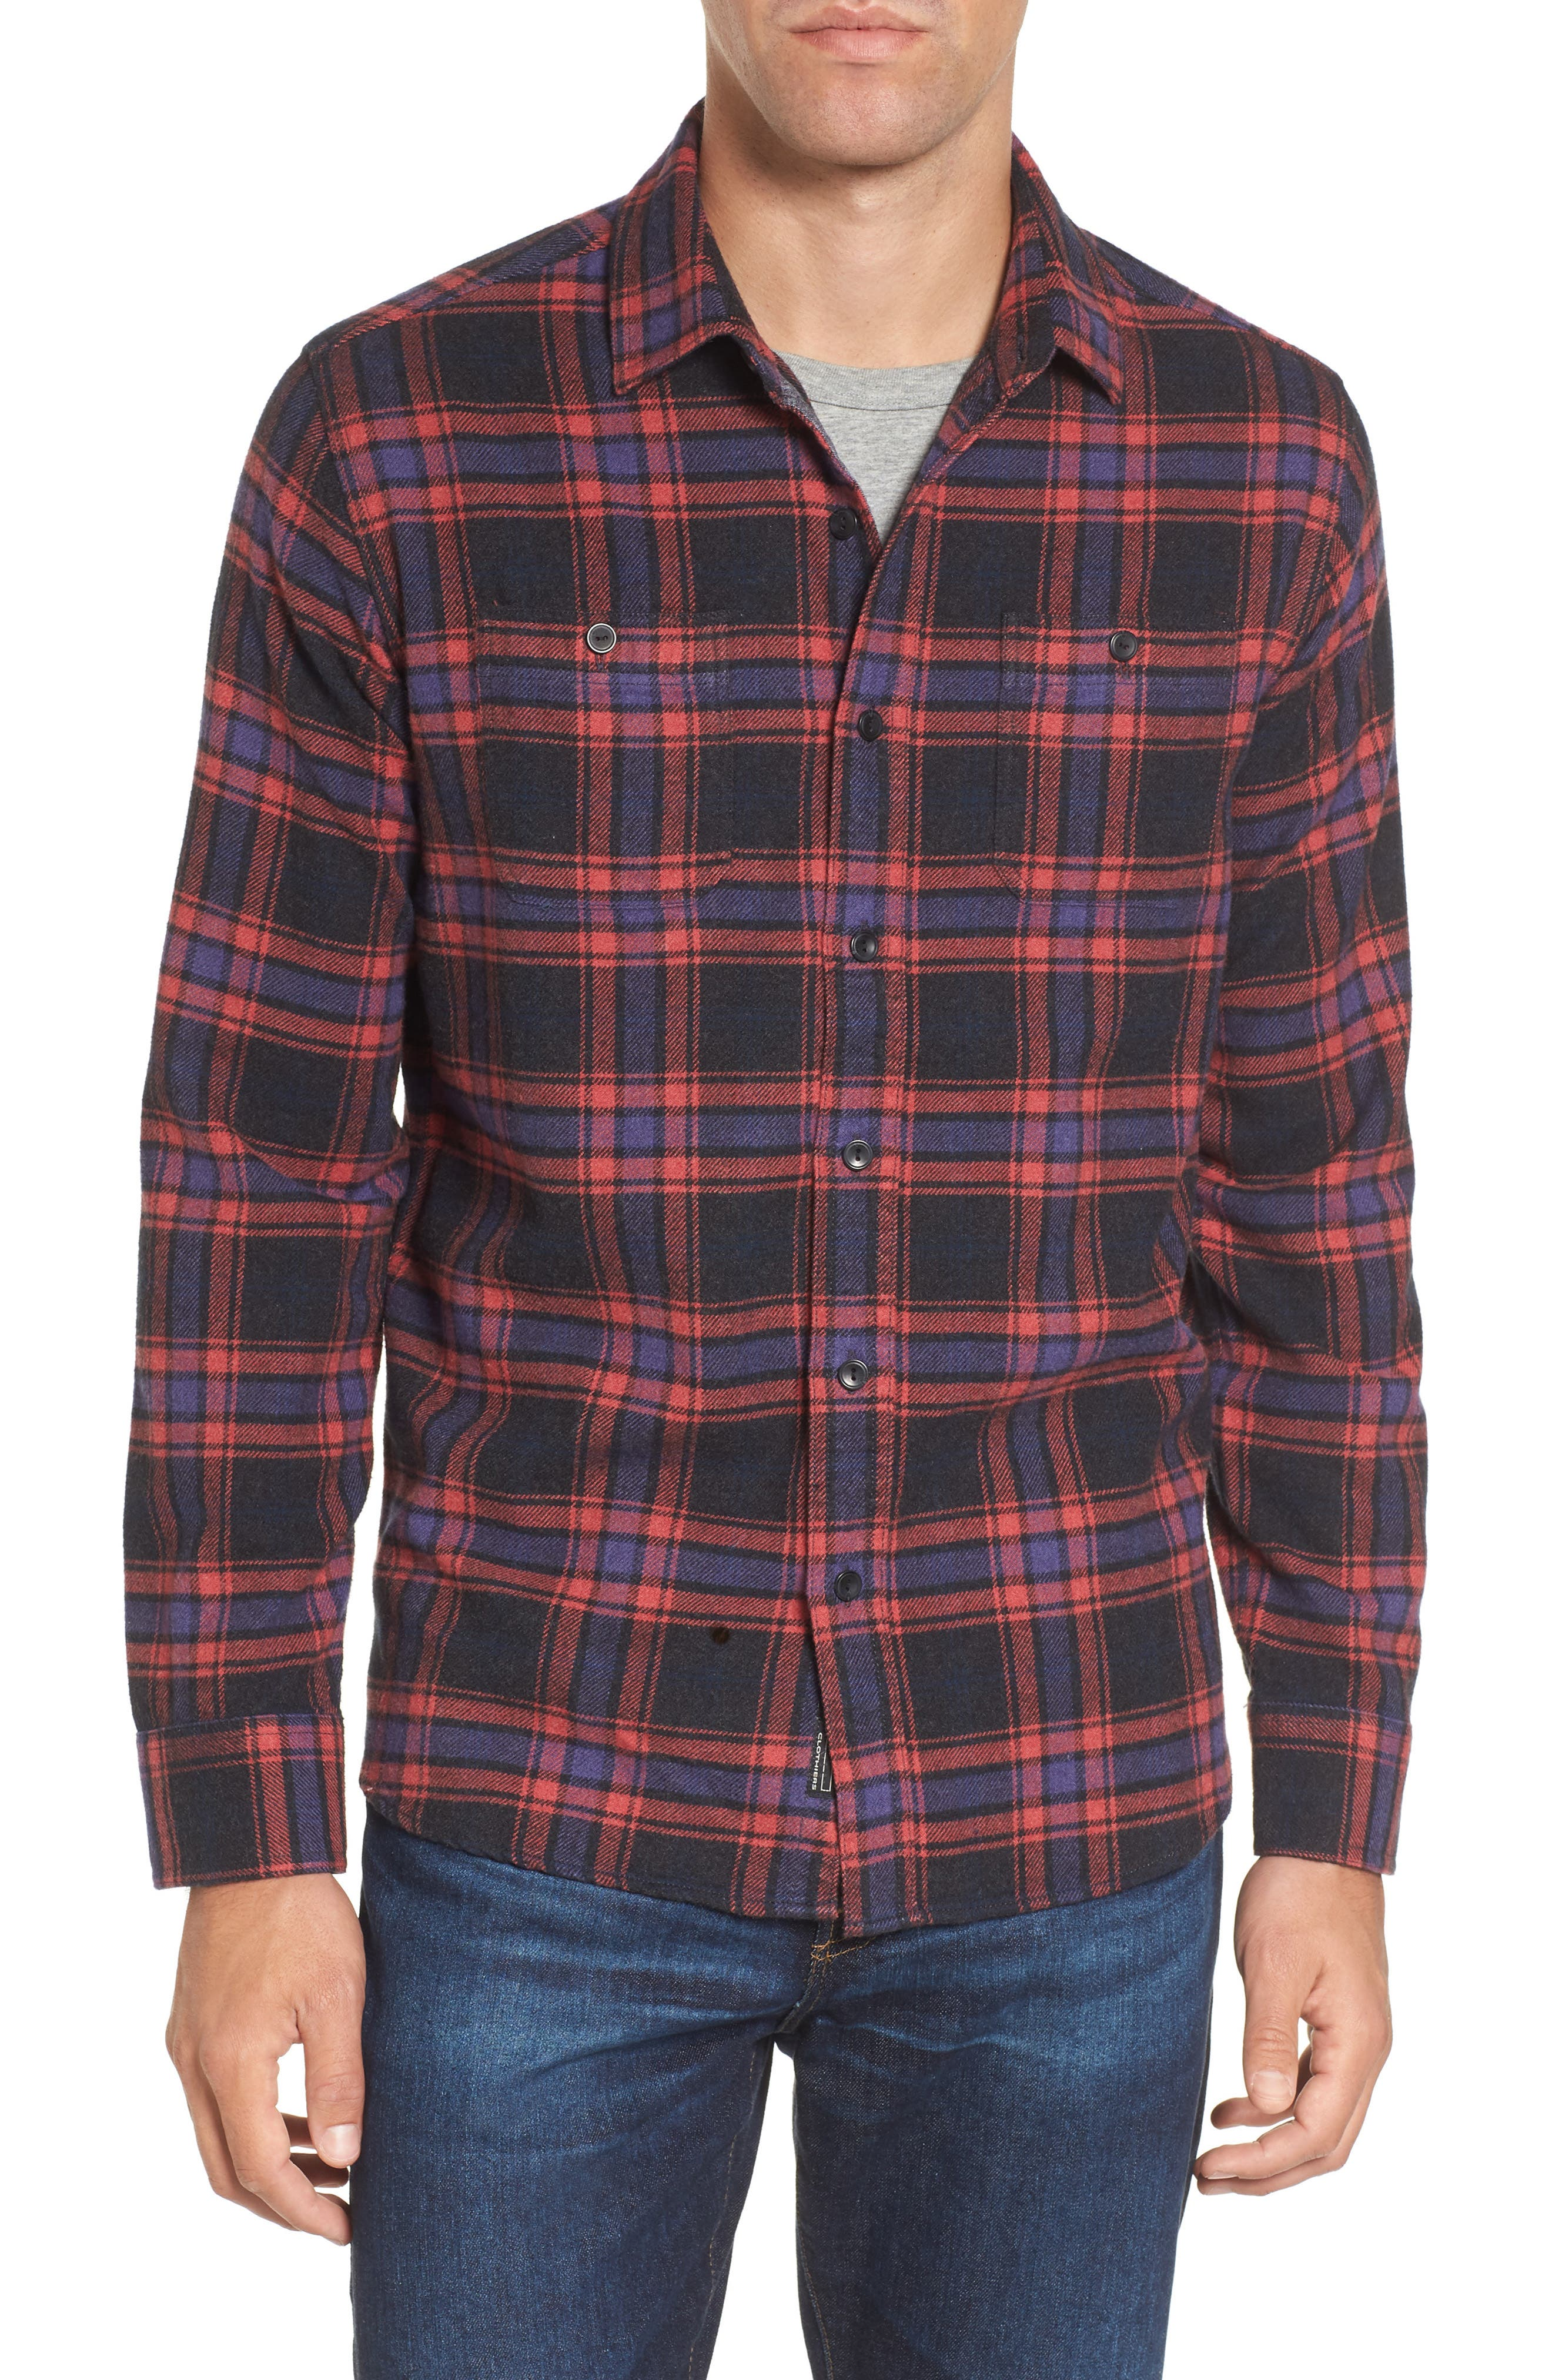 Chaucer Heritage Flannel Shirt,                             Main thumbnail 1, color,